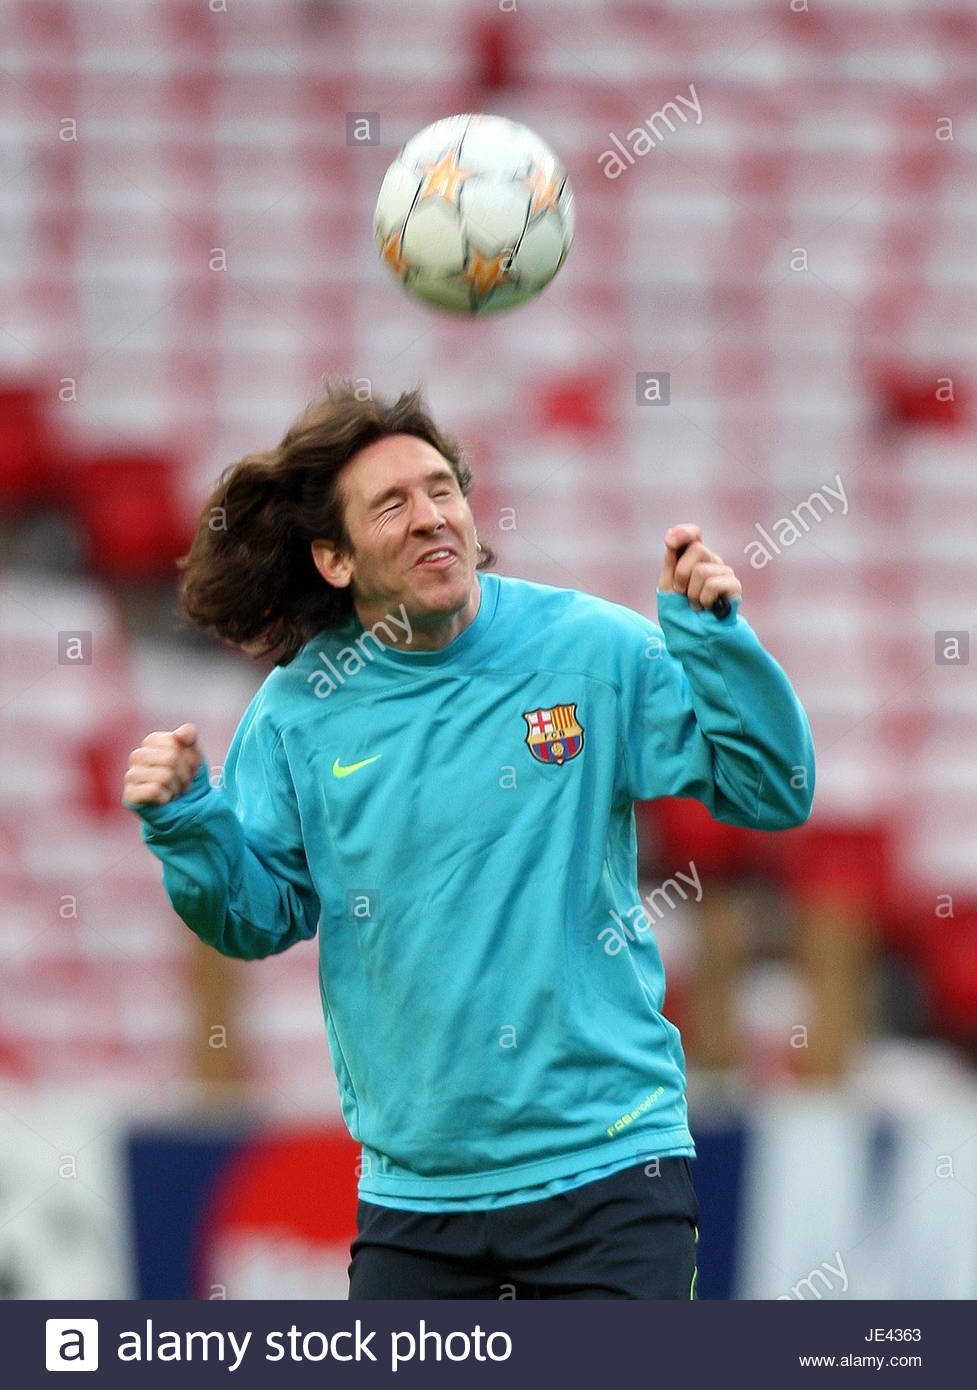 File photo dated 28-04-2008 of Barcelona's Lionel Messi - Stock Image